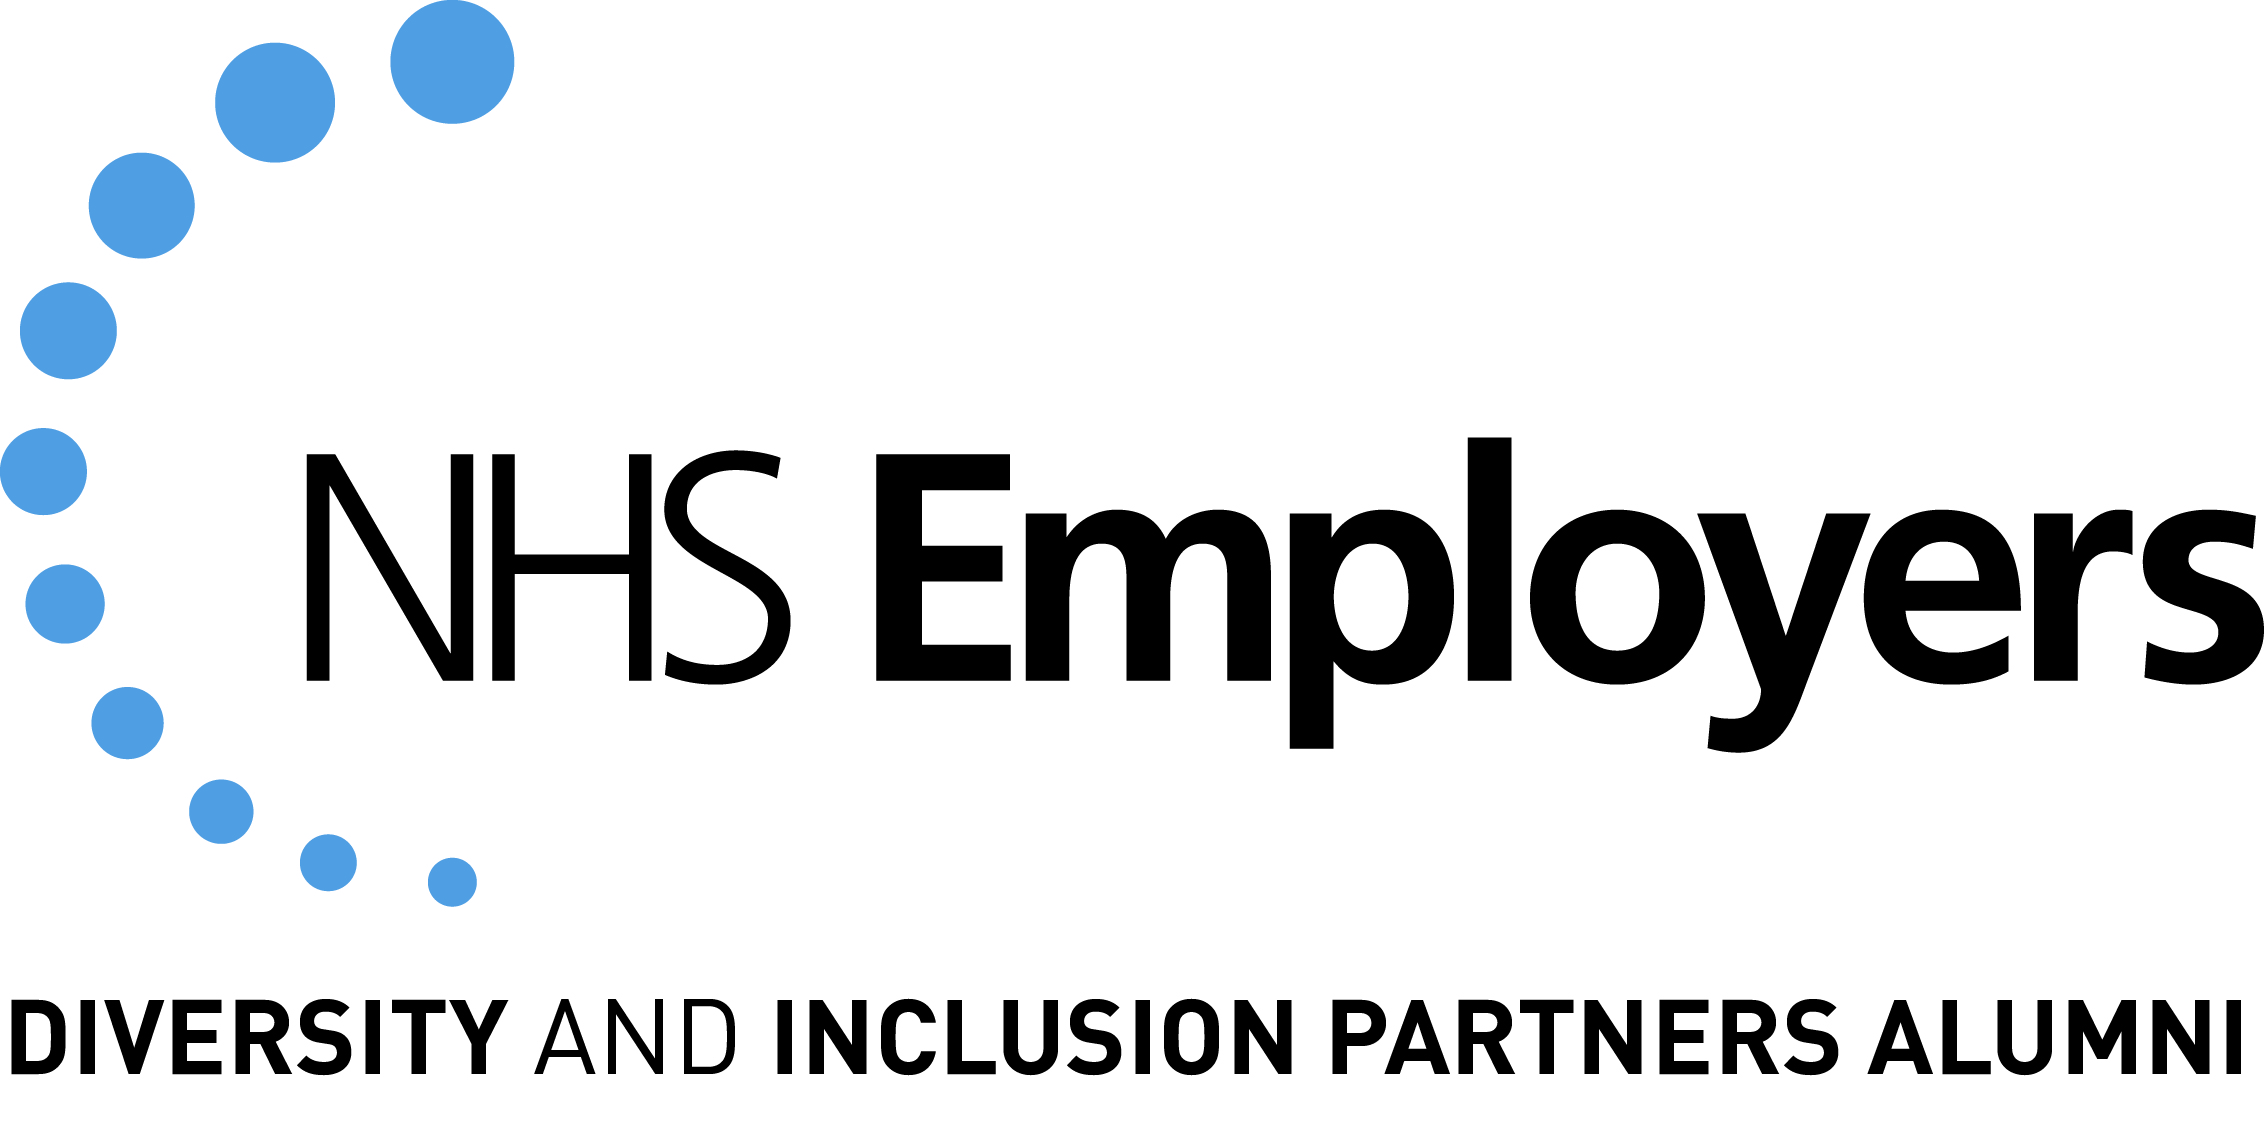 NHS Employers diversity and inclusion partners logo